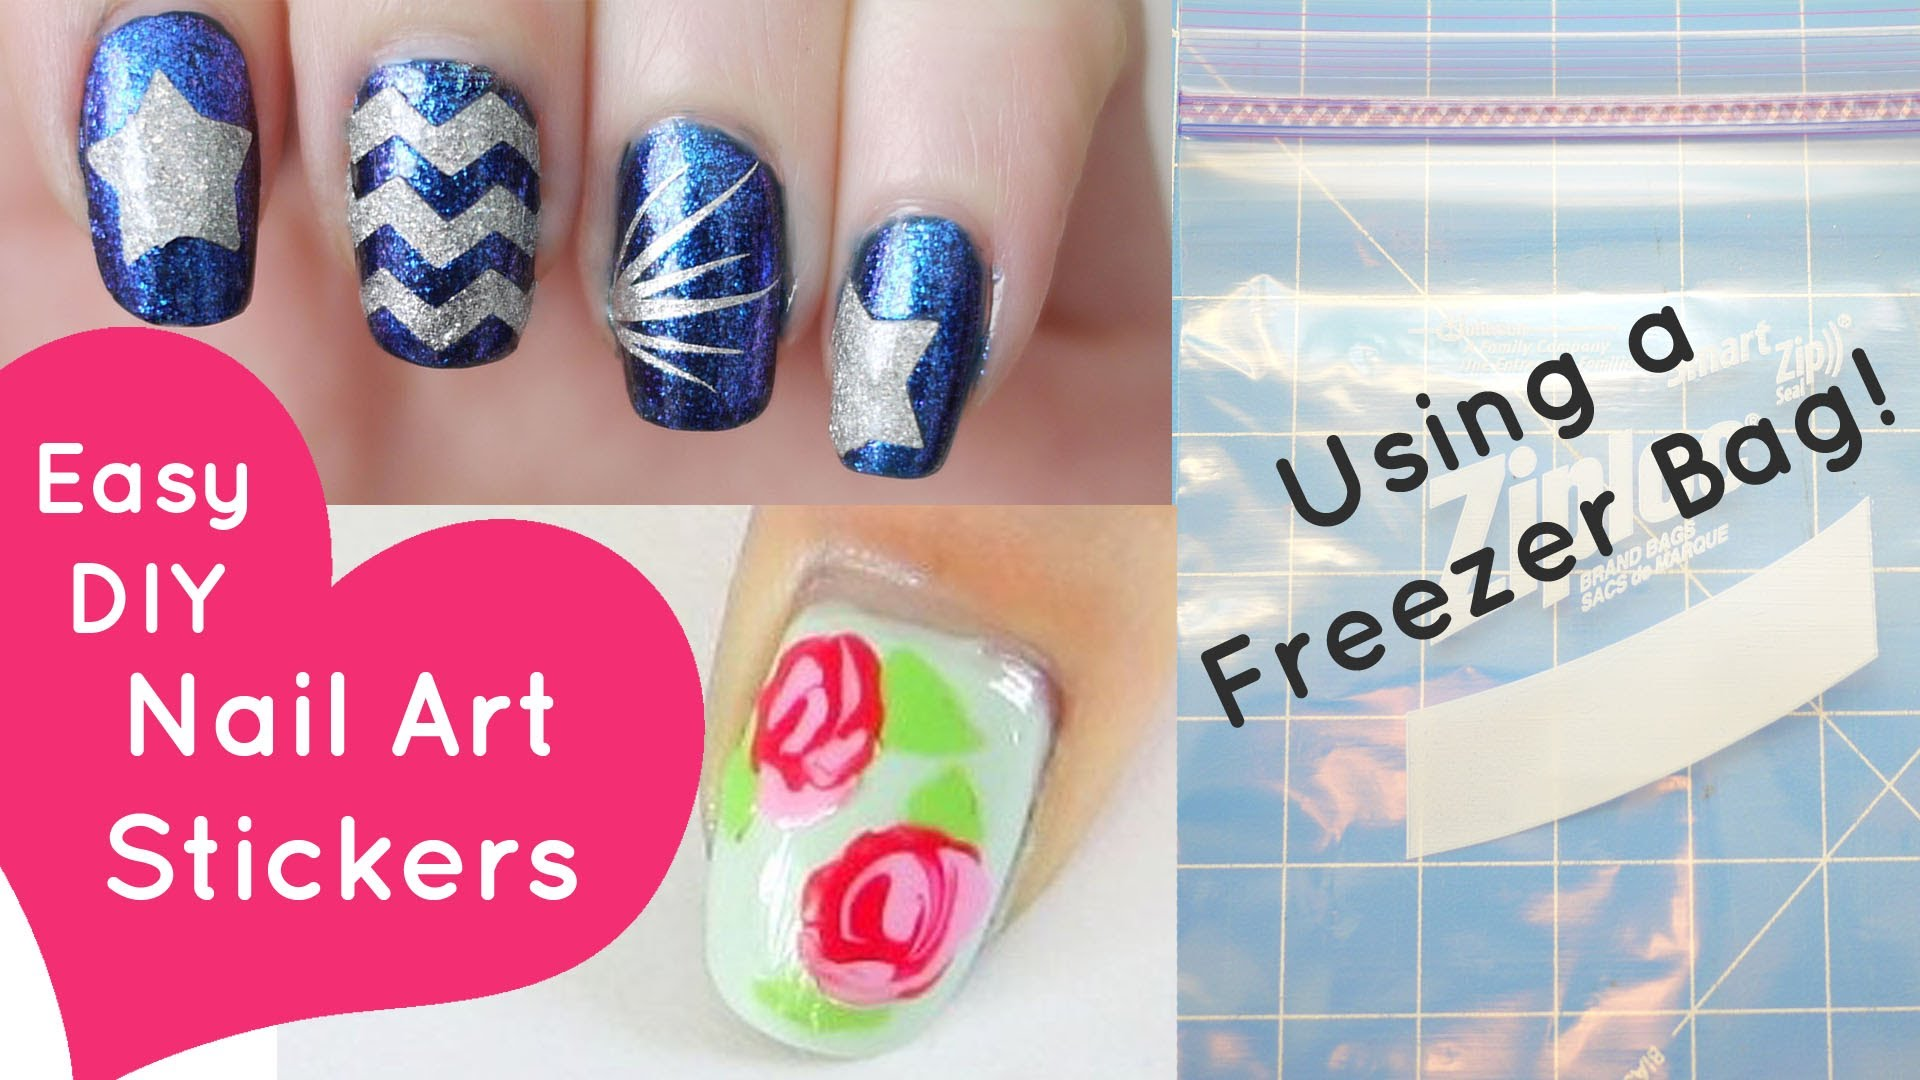 15 DIY Simple Nail Designs Images - Easy DIY Nail Art Designs ...